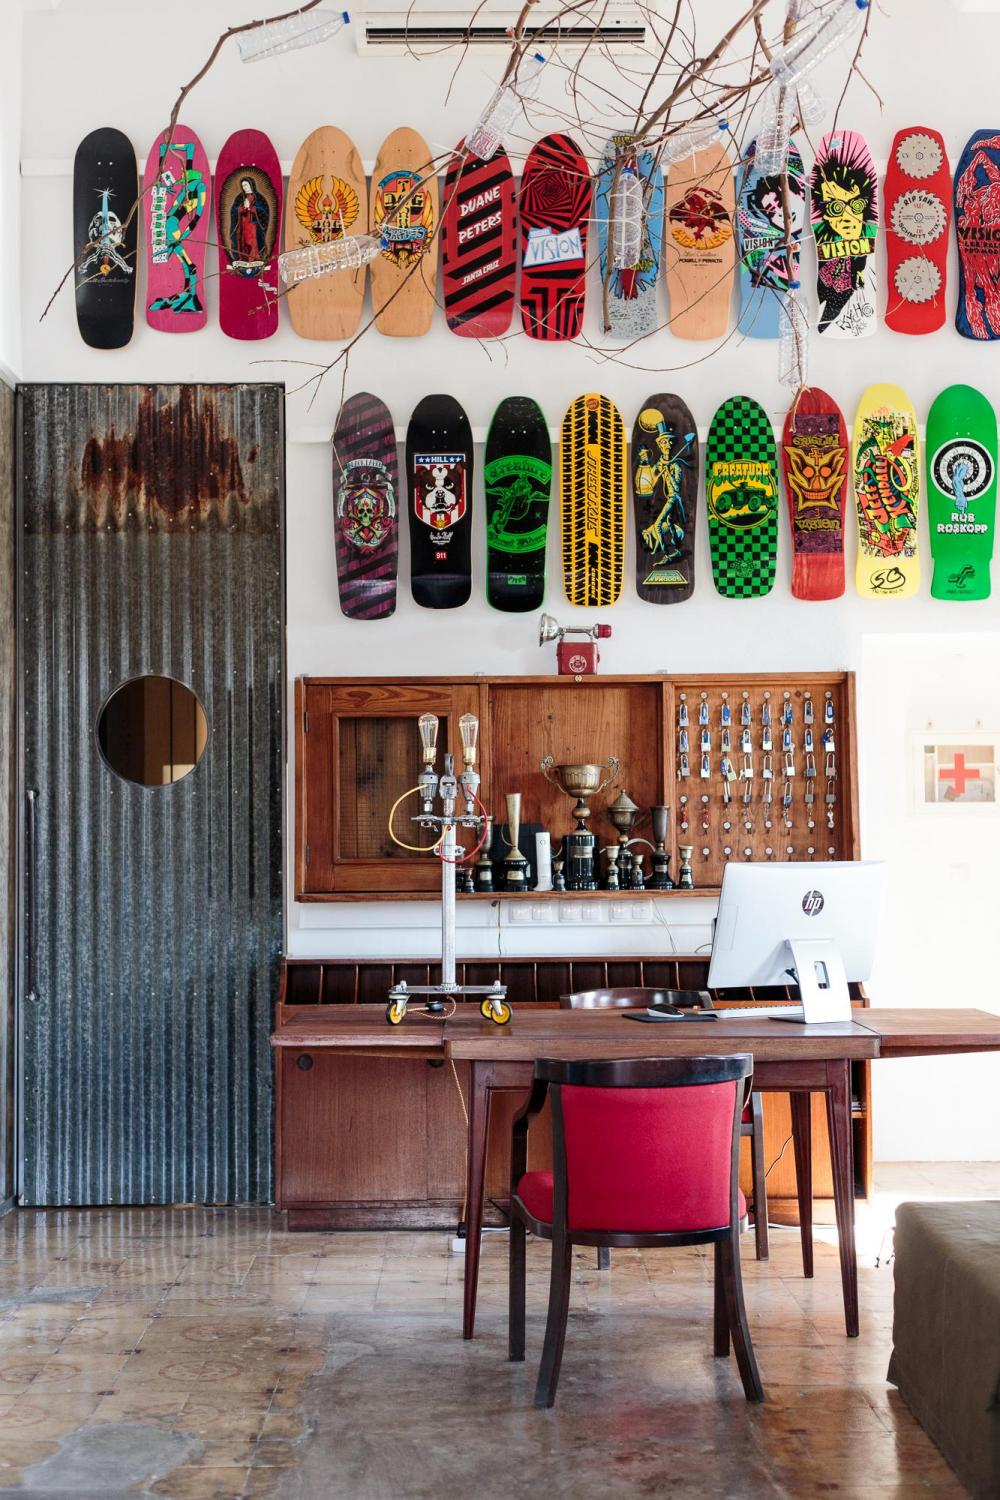 Impressive tempory exibition of a private collection of skateboards.